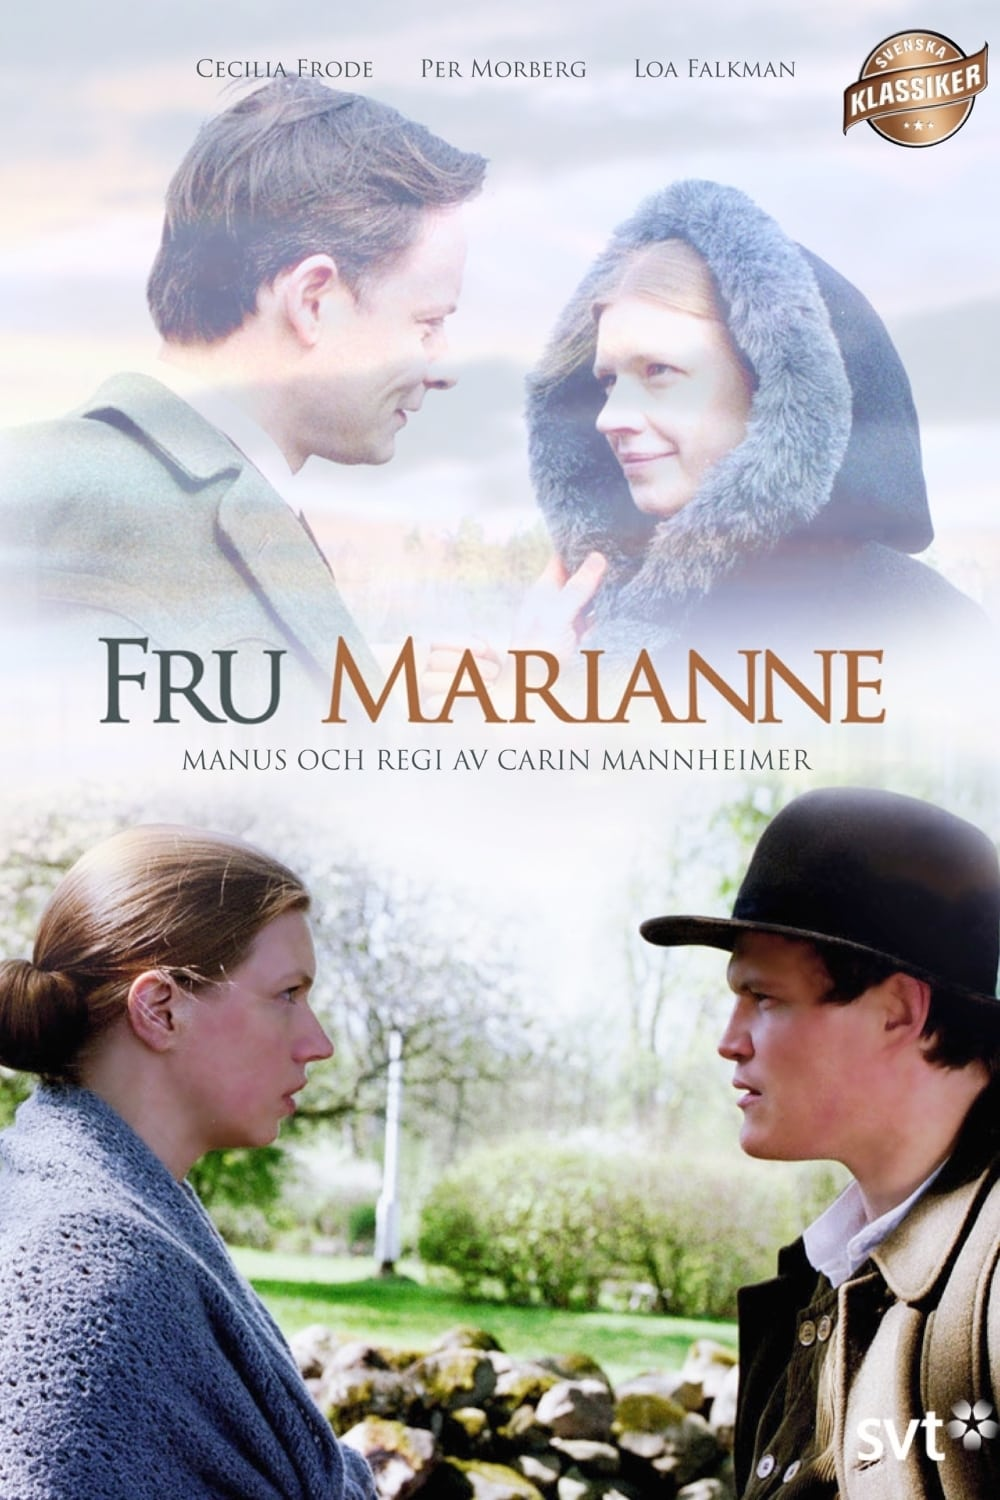 Fru Marianne TV Shows About Countryside